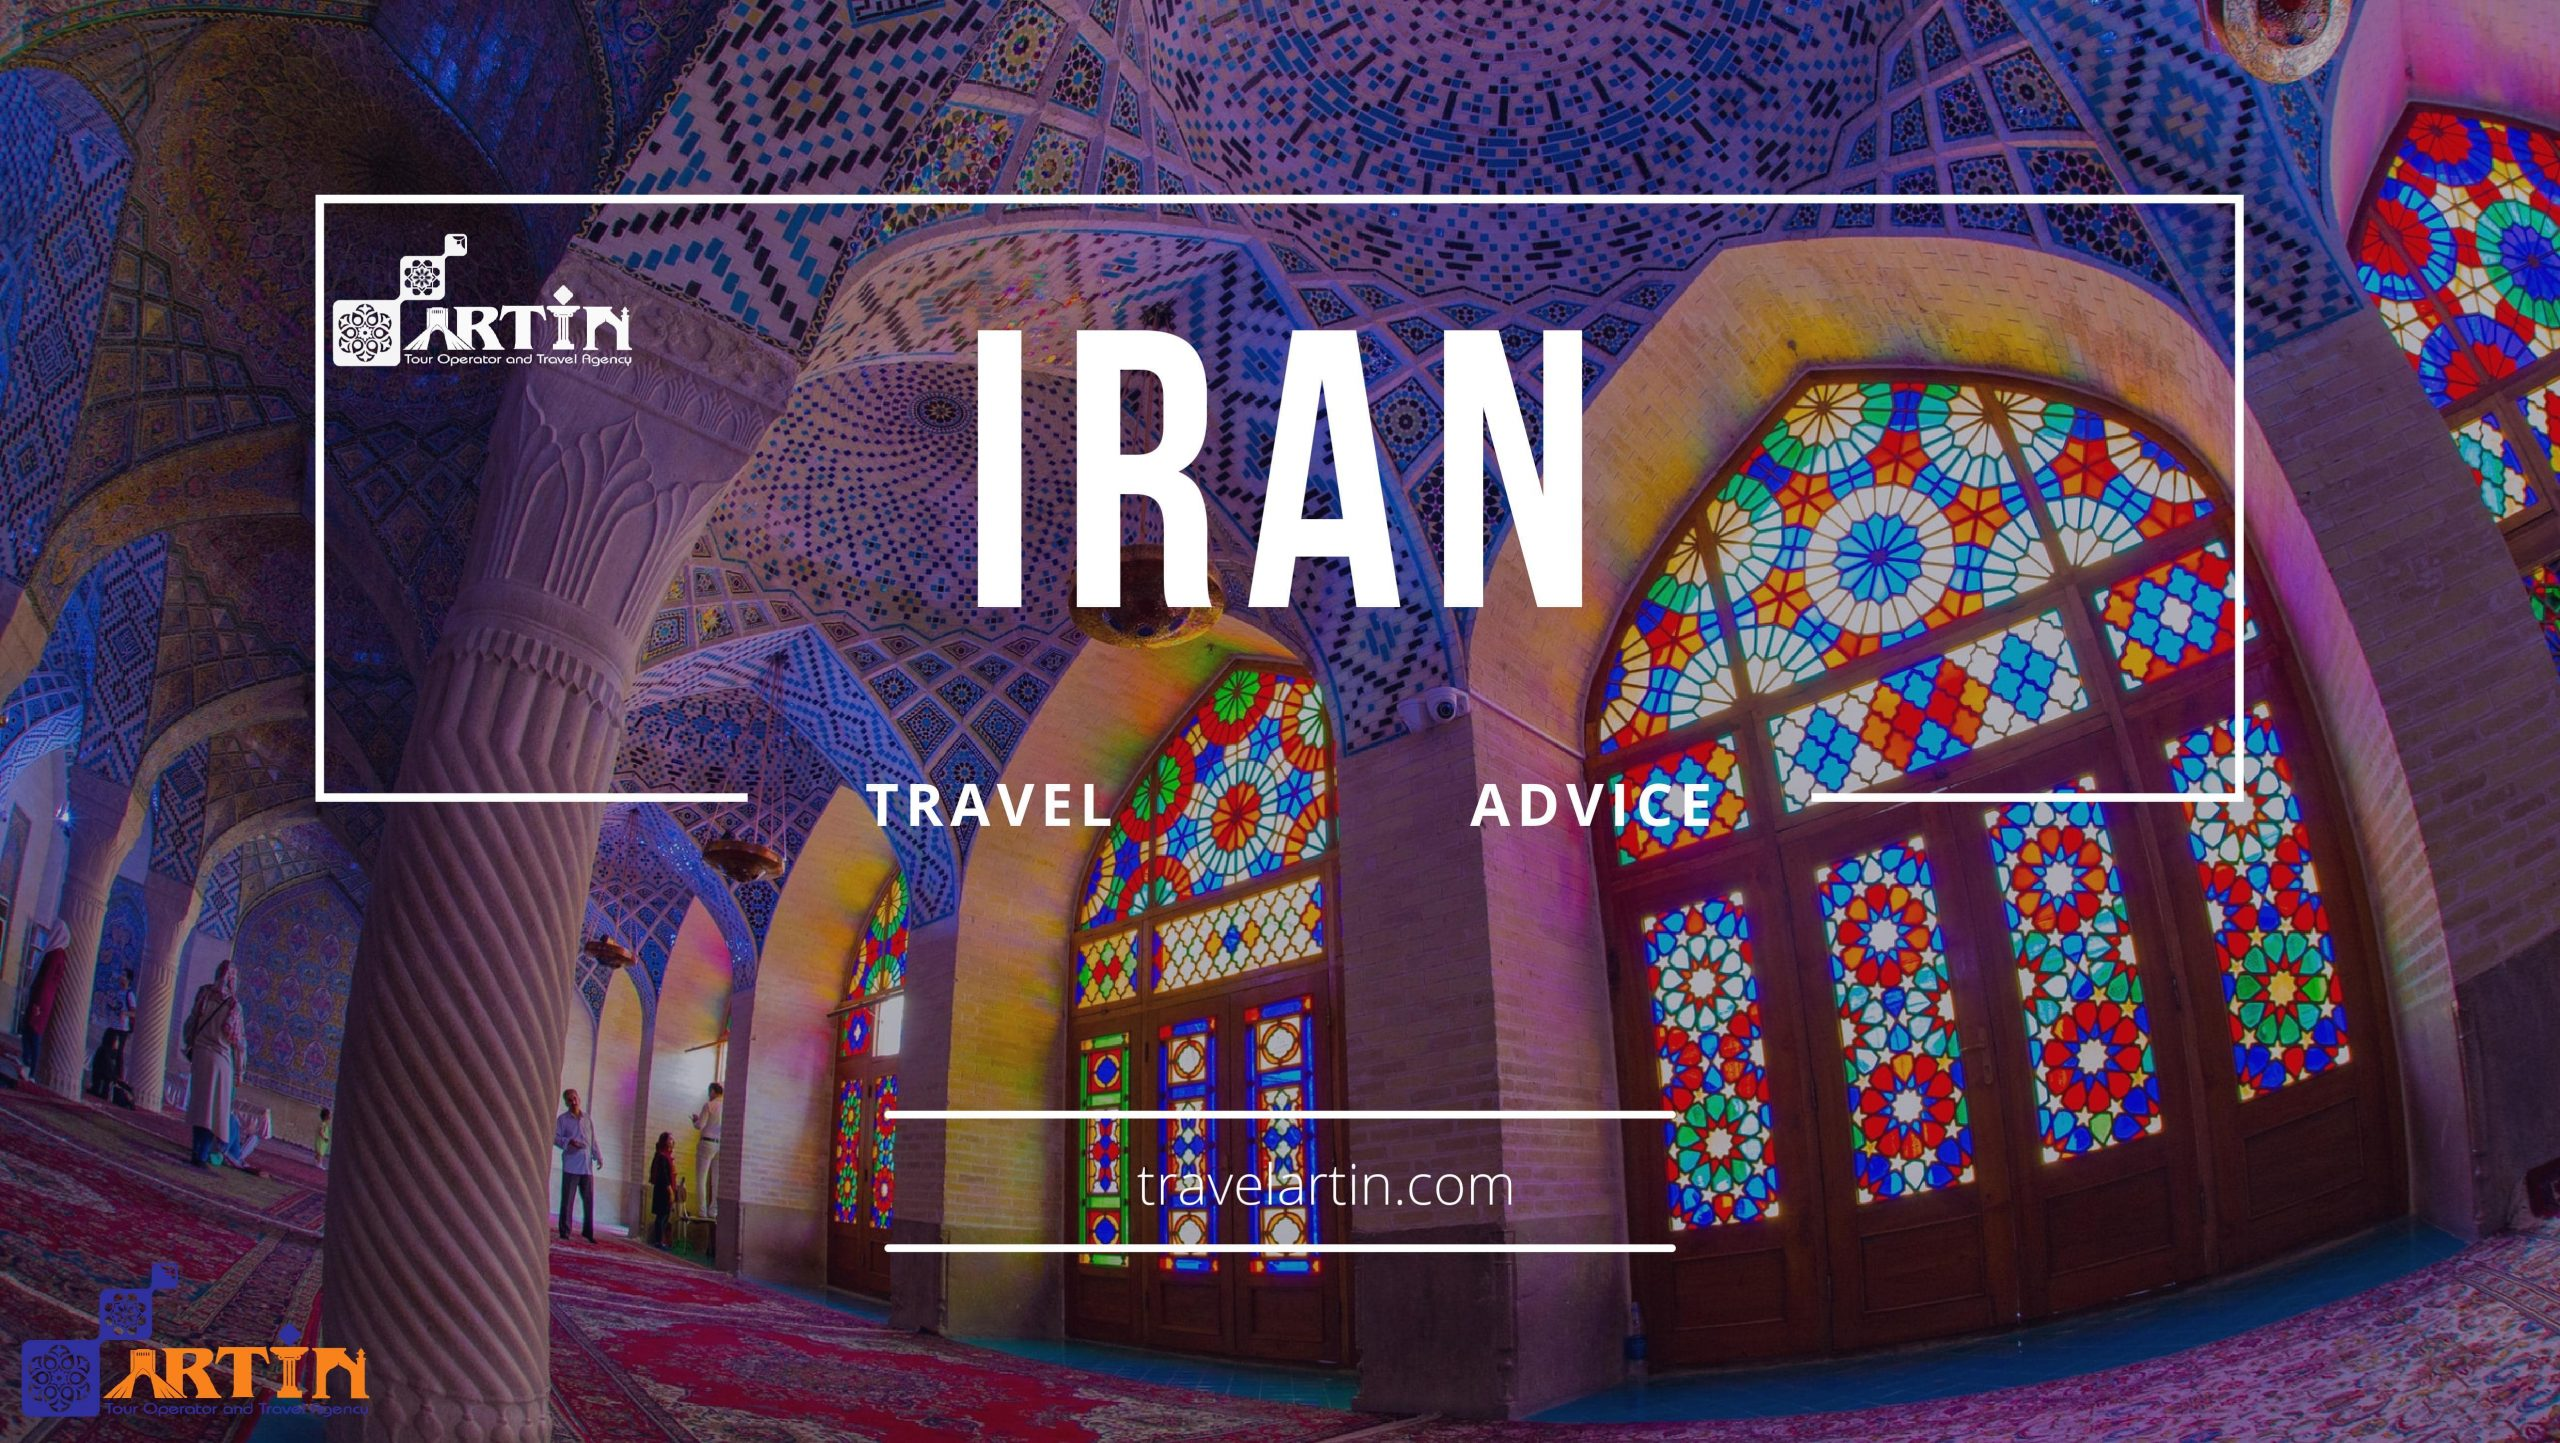 Travel Advice for Iran by Artin Travel